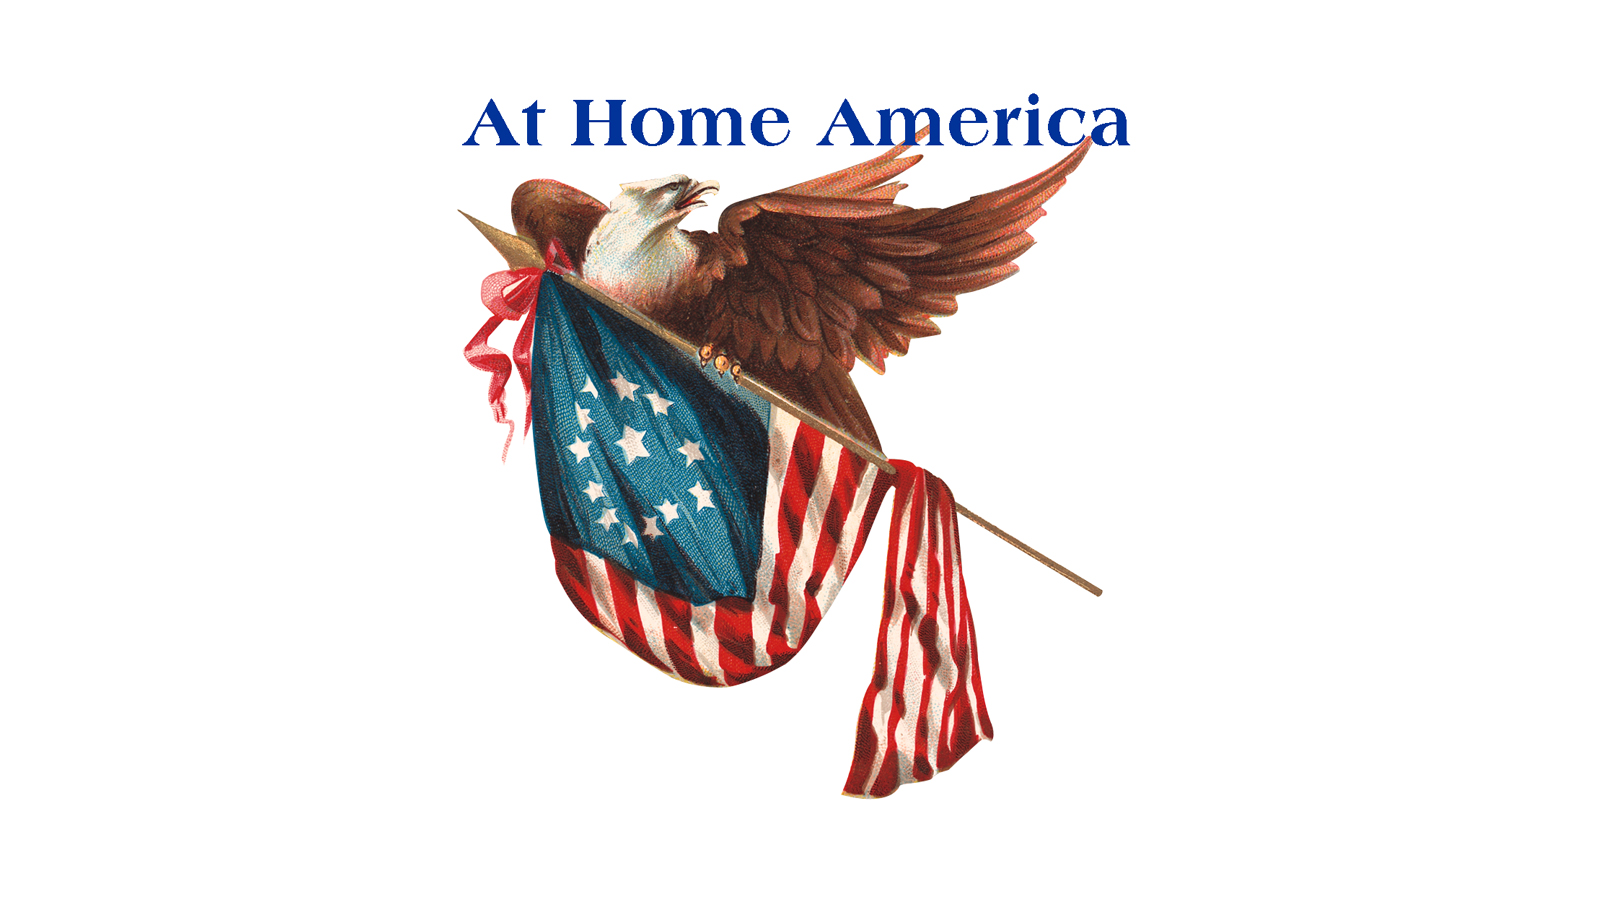 at-home-america-large-tmoss.jpg